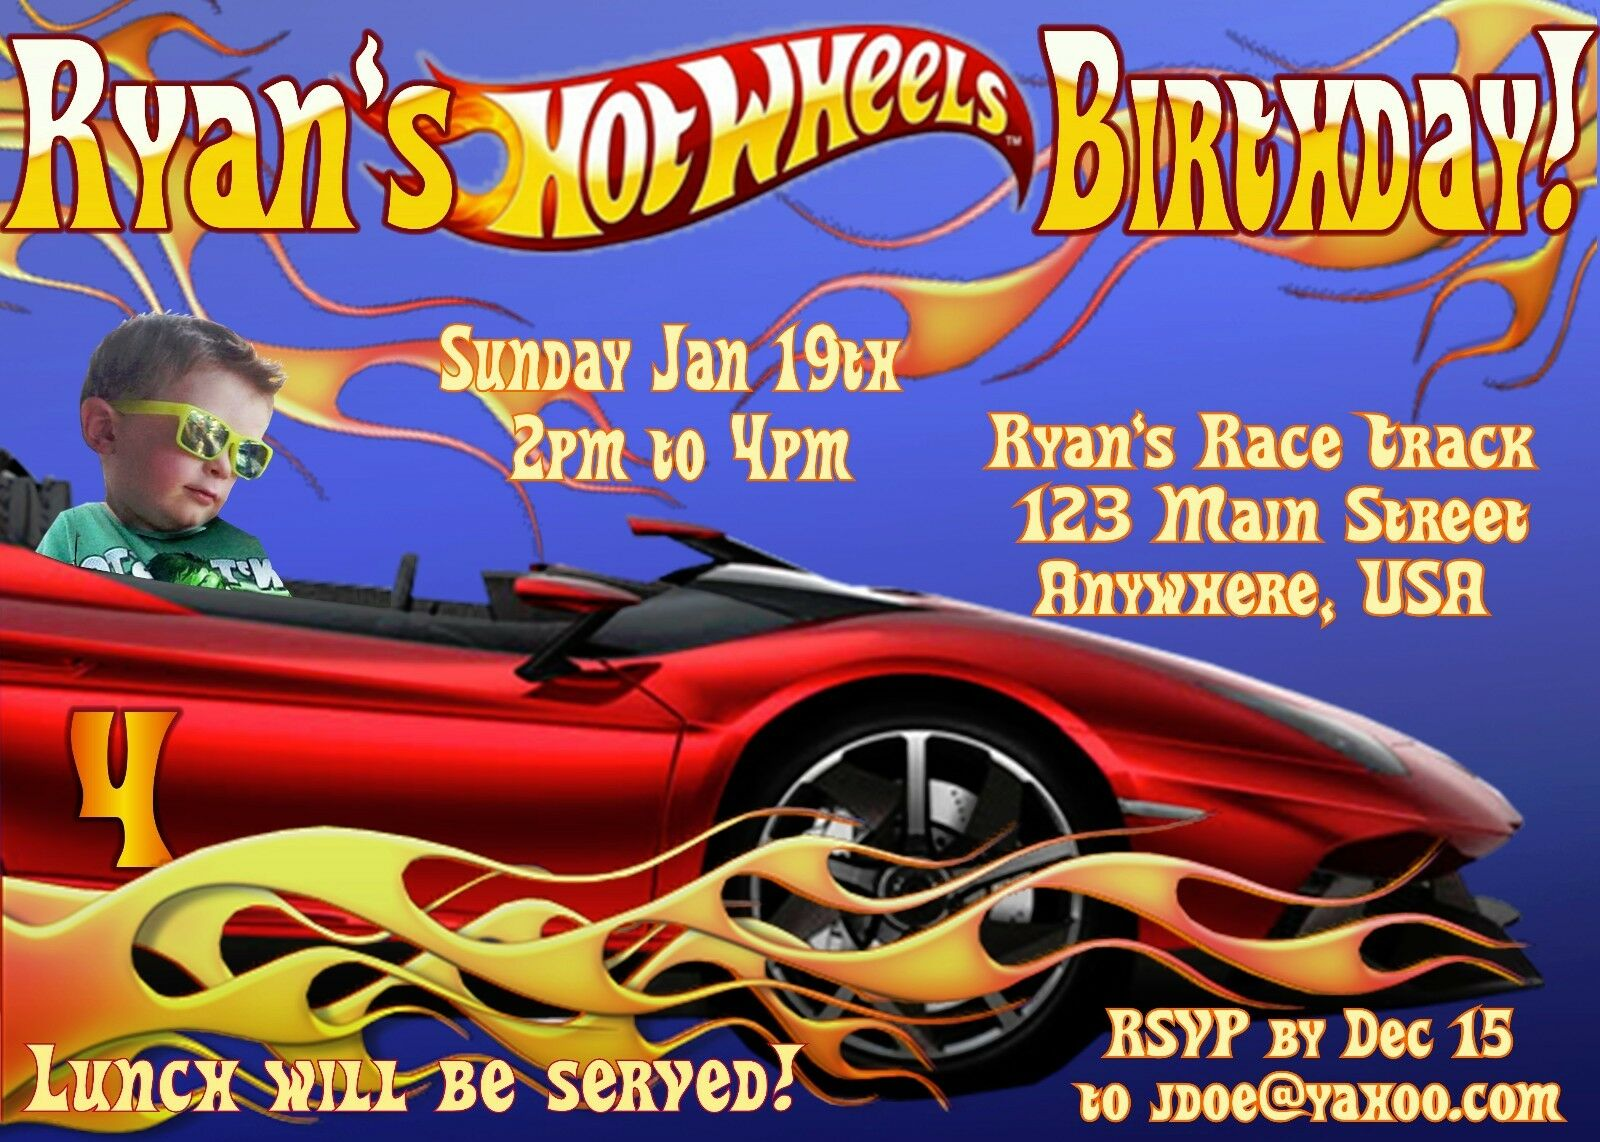 HOT WHEELS PERSONALIZED PHOTO Birthday Invitations - 4x6 OR 5x7 ...